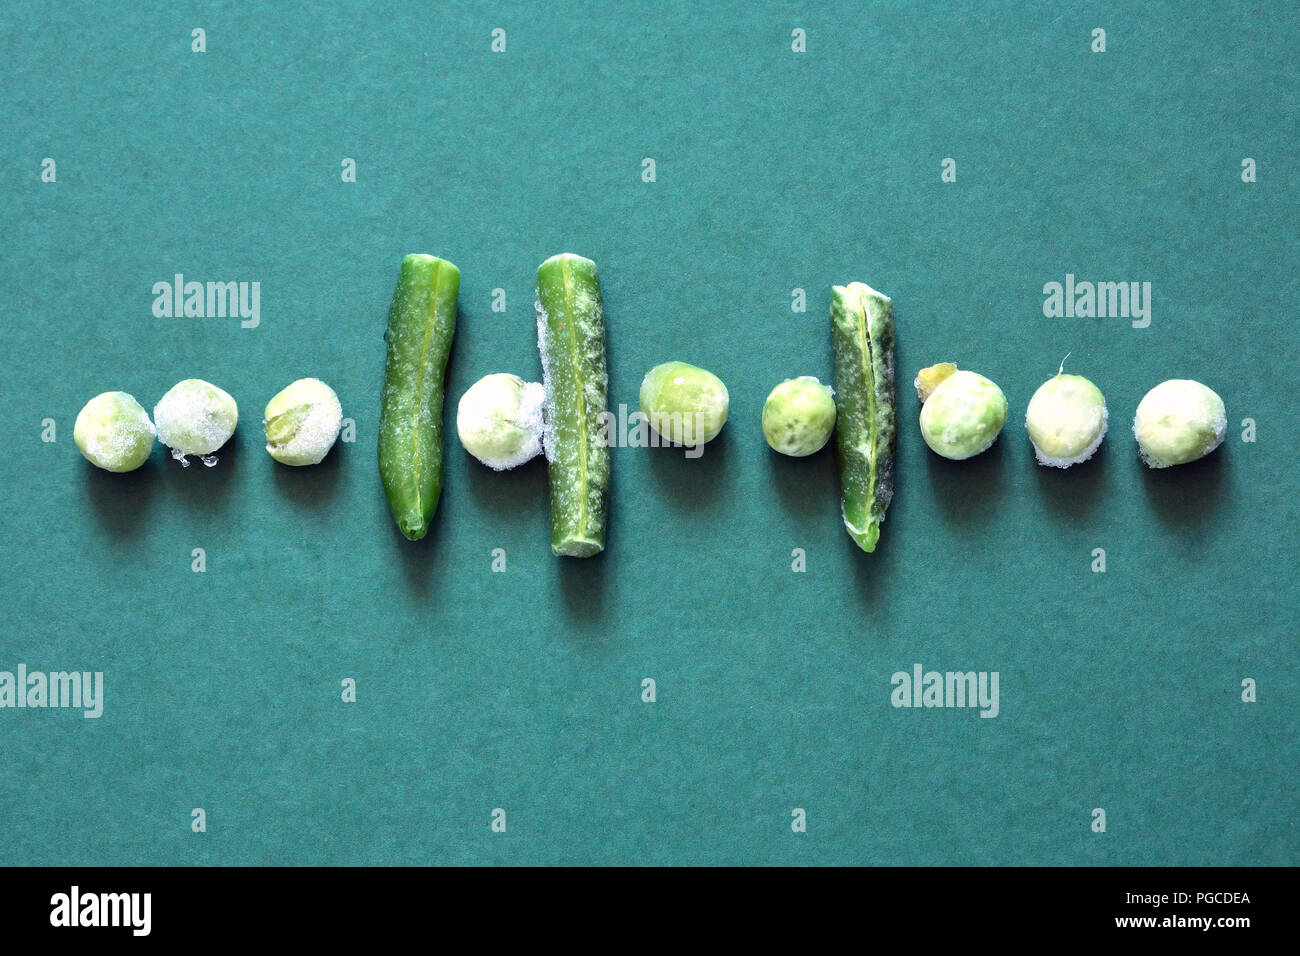 Counting Beans Stock Photos Amp Counting Beans Stock Images